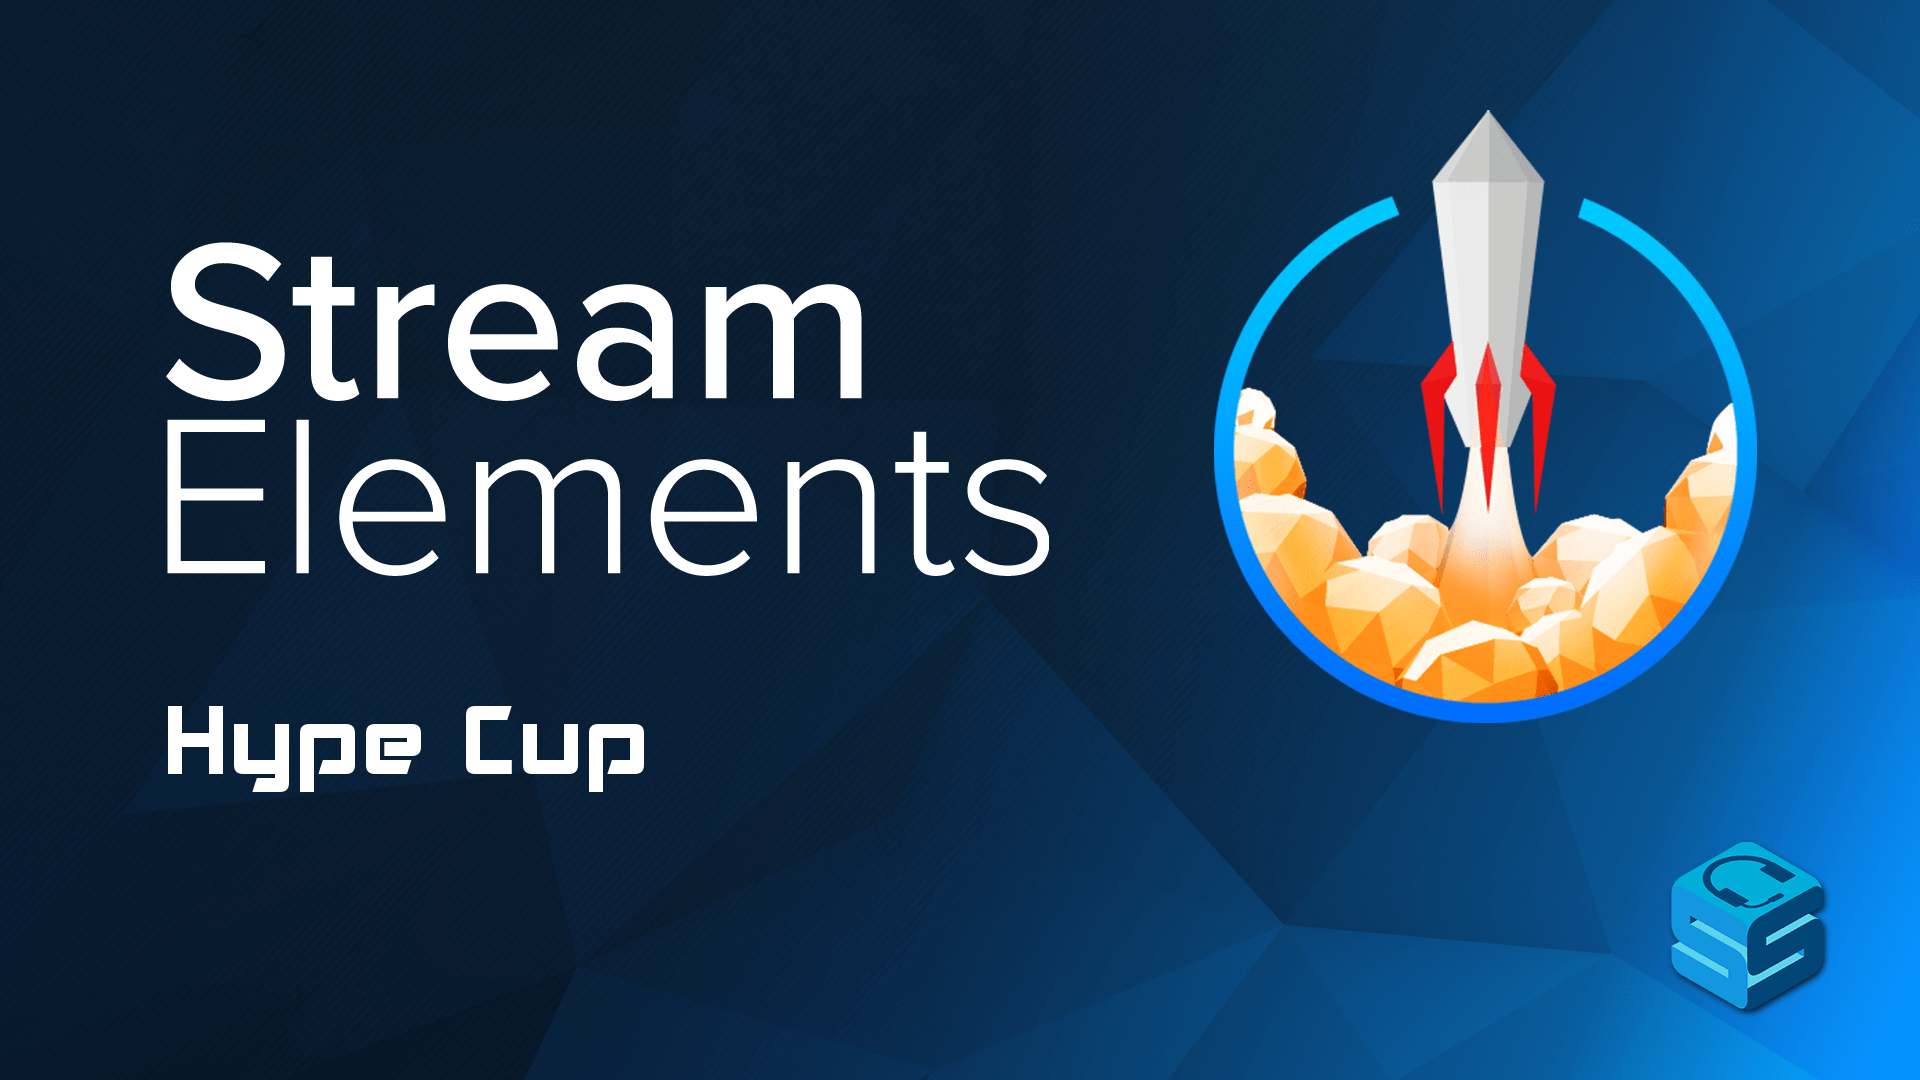 StreamElements Releases the Hype Cup - StreamerSquare